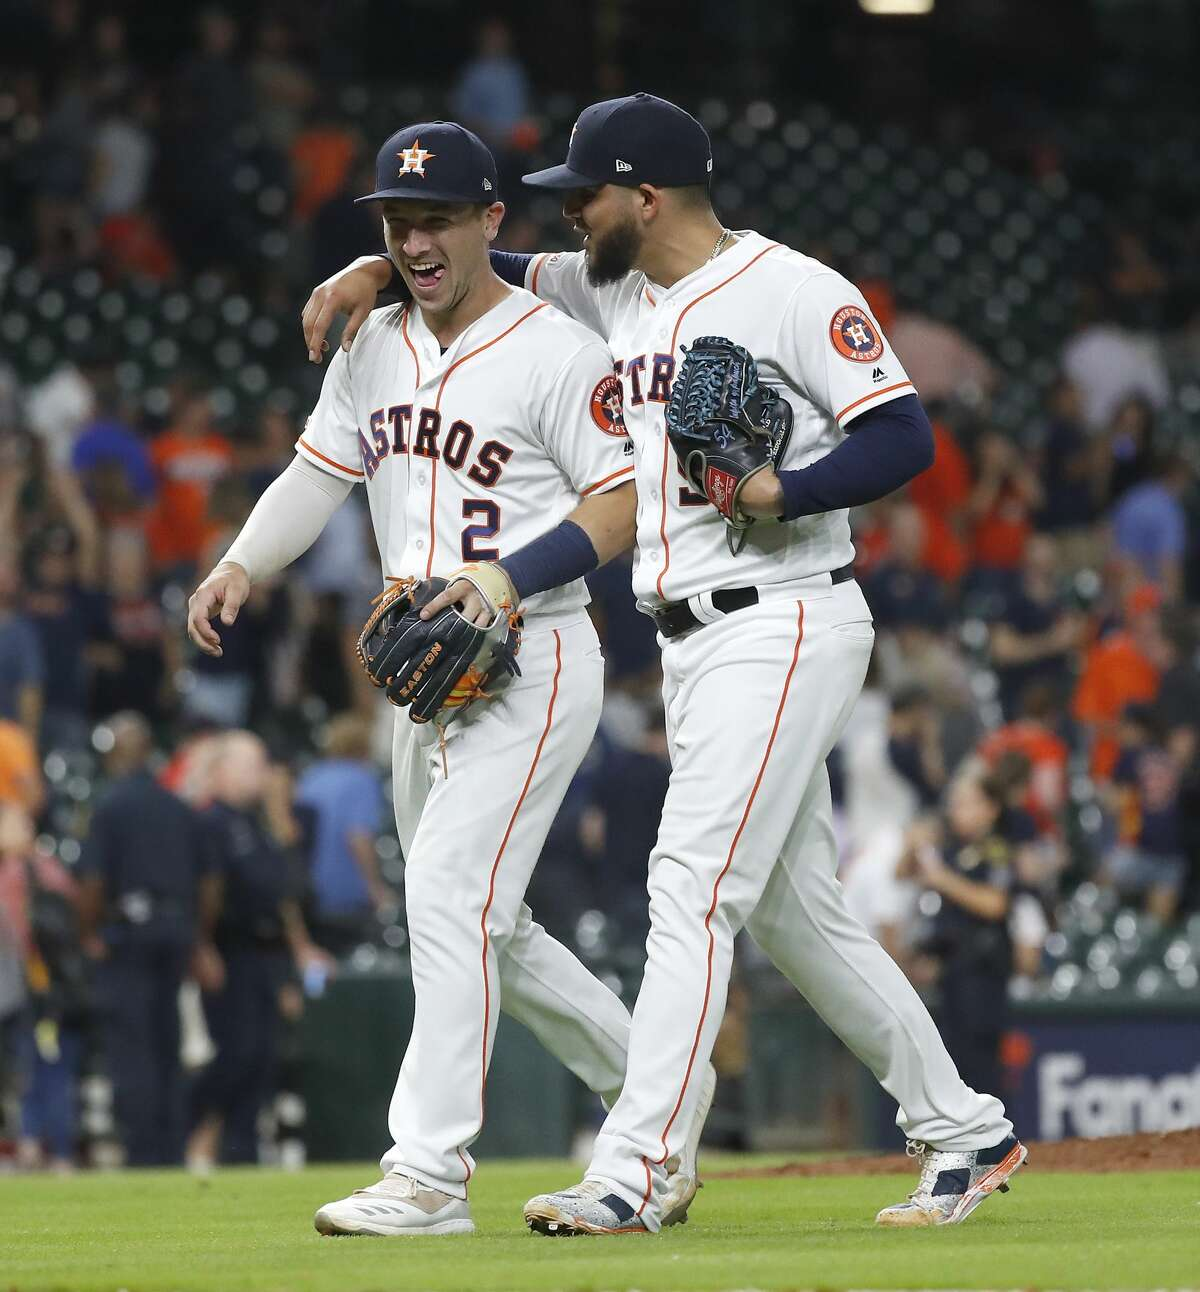 Houston Astros Alex Bregman (2) and Roberto Osuna (54) hug as they walk back to the dugout after an MLB game at Minute Maid Park, Thursday, August 22, 2019. Astros won 6-3.